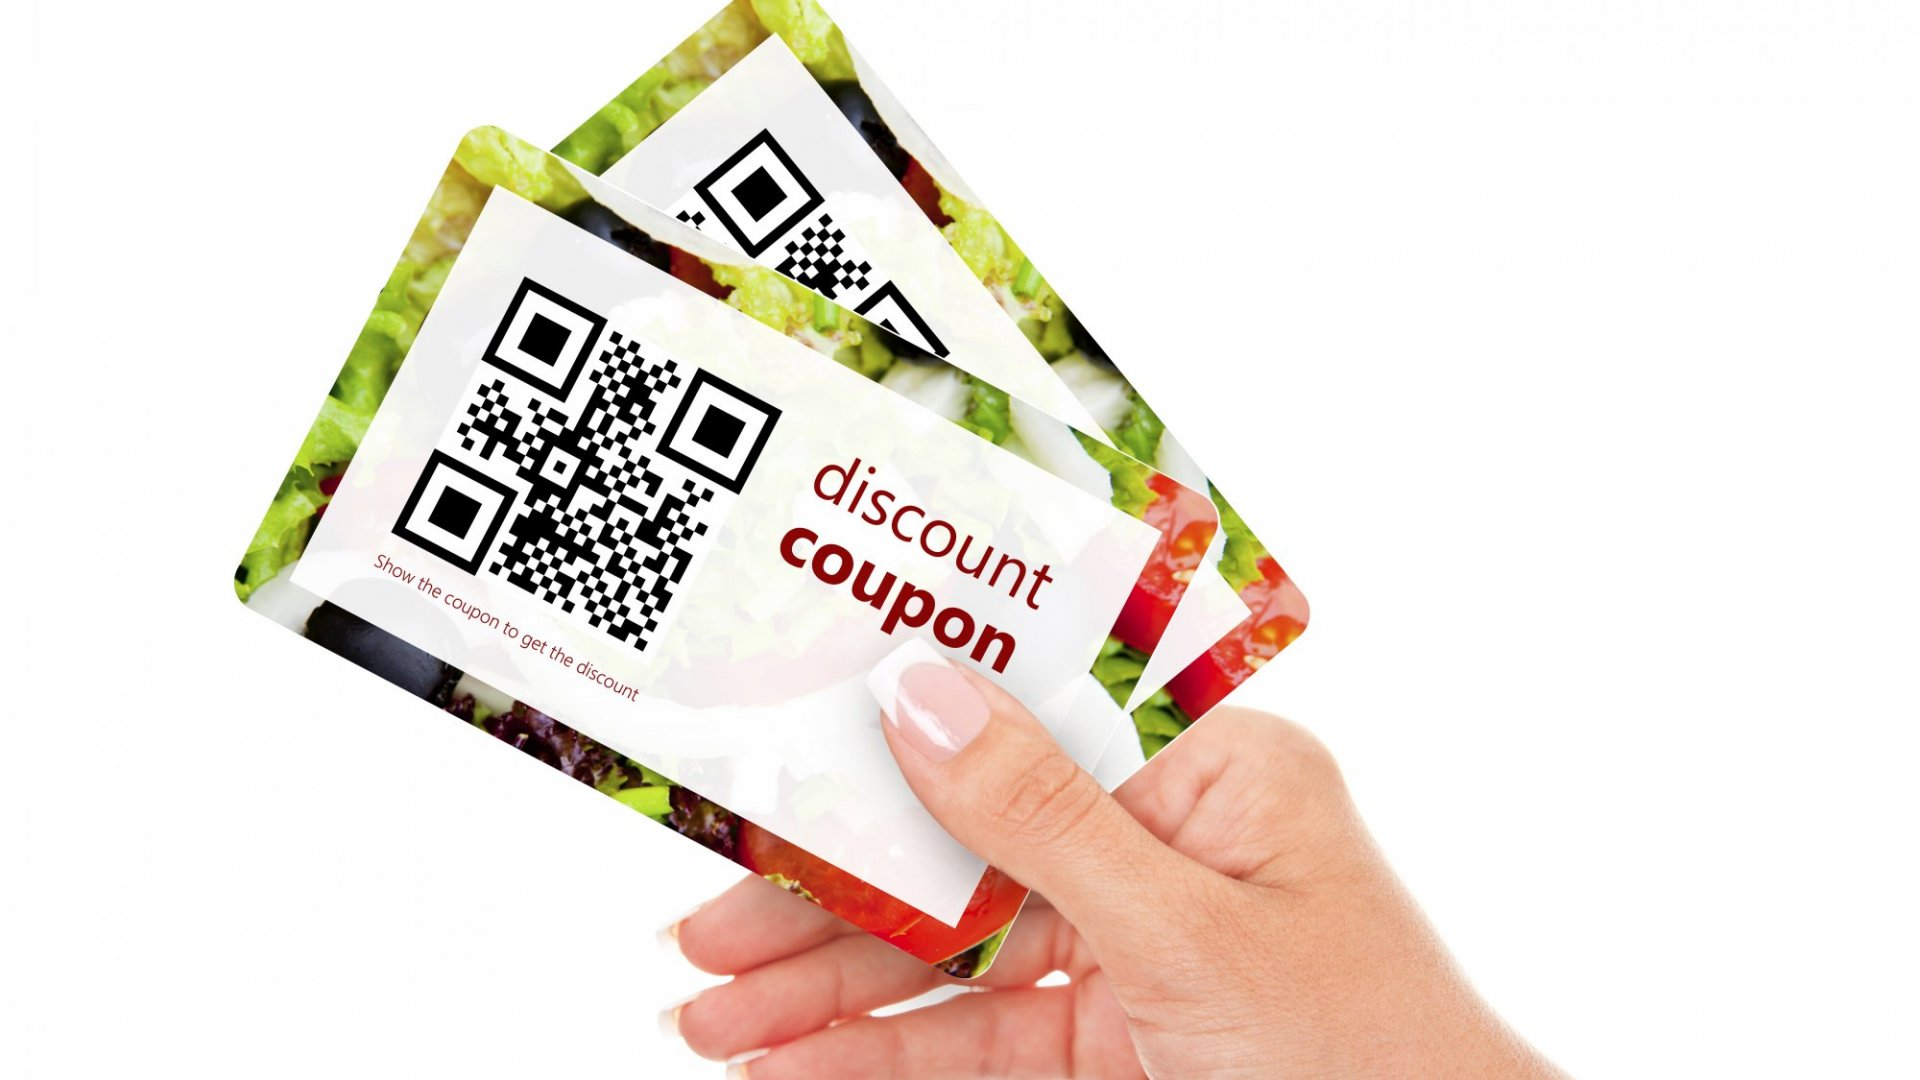 Study Shows Coupons Are Major Motivating Factor For Choosing a Restaurant